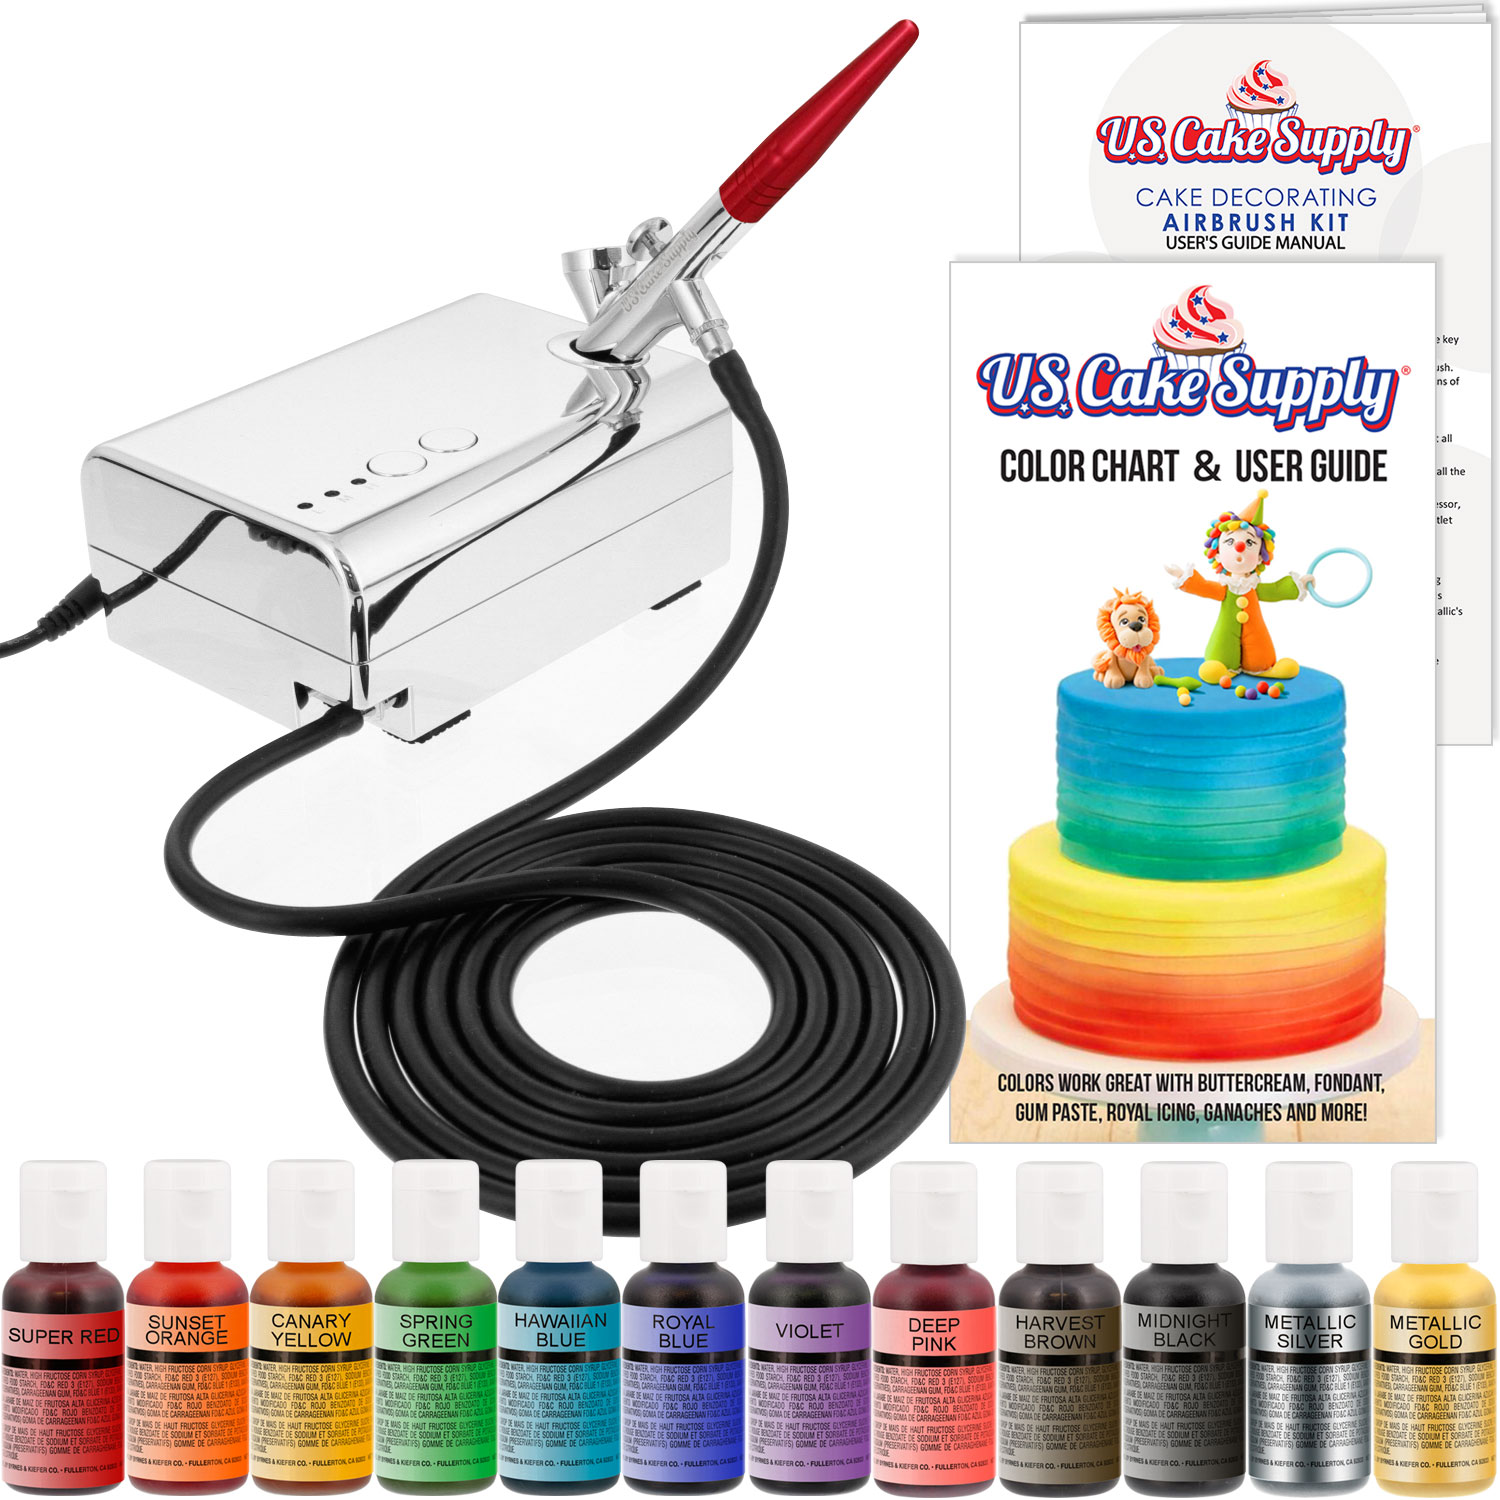 U.S. Cake Supply Complete Cake Decorating Airbrush Kit Compressor ...